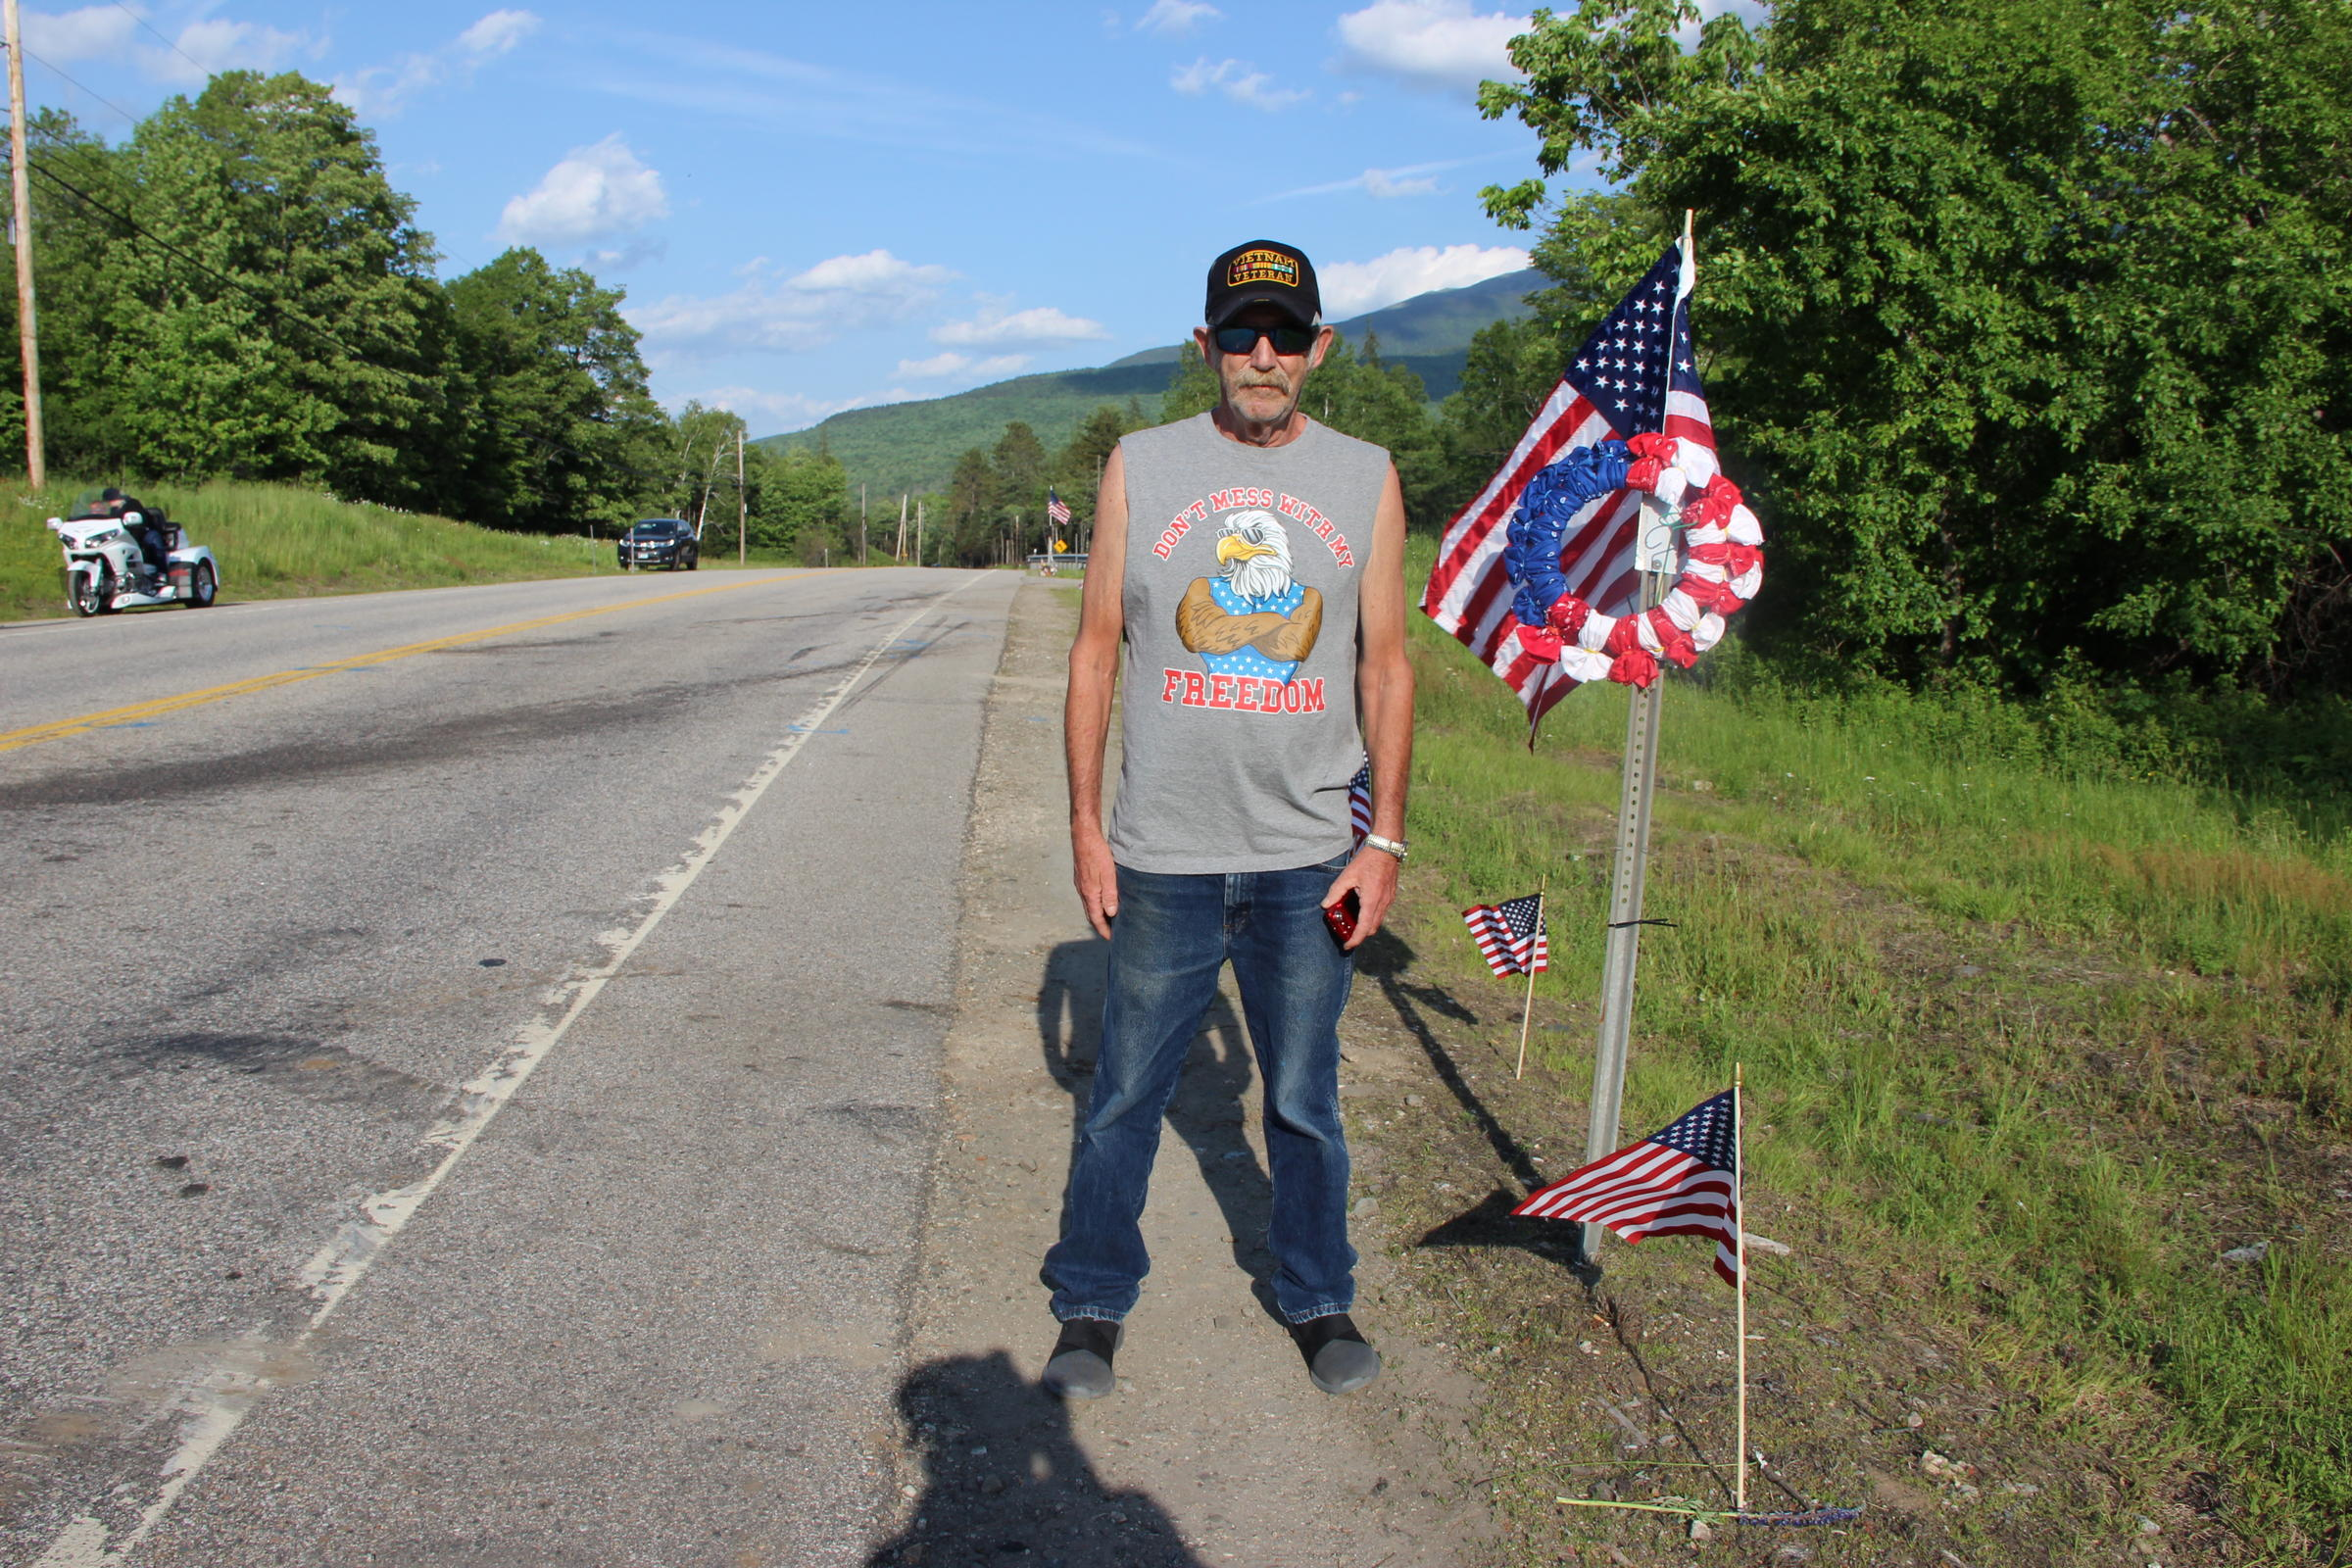 After the Crash: Route 2 Becomes Memorial in Wake of